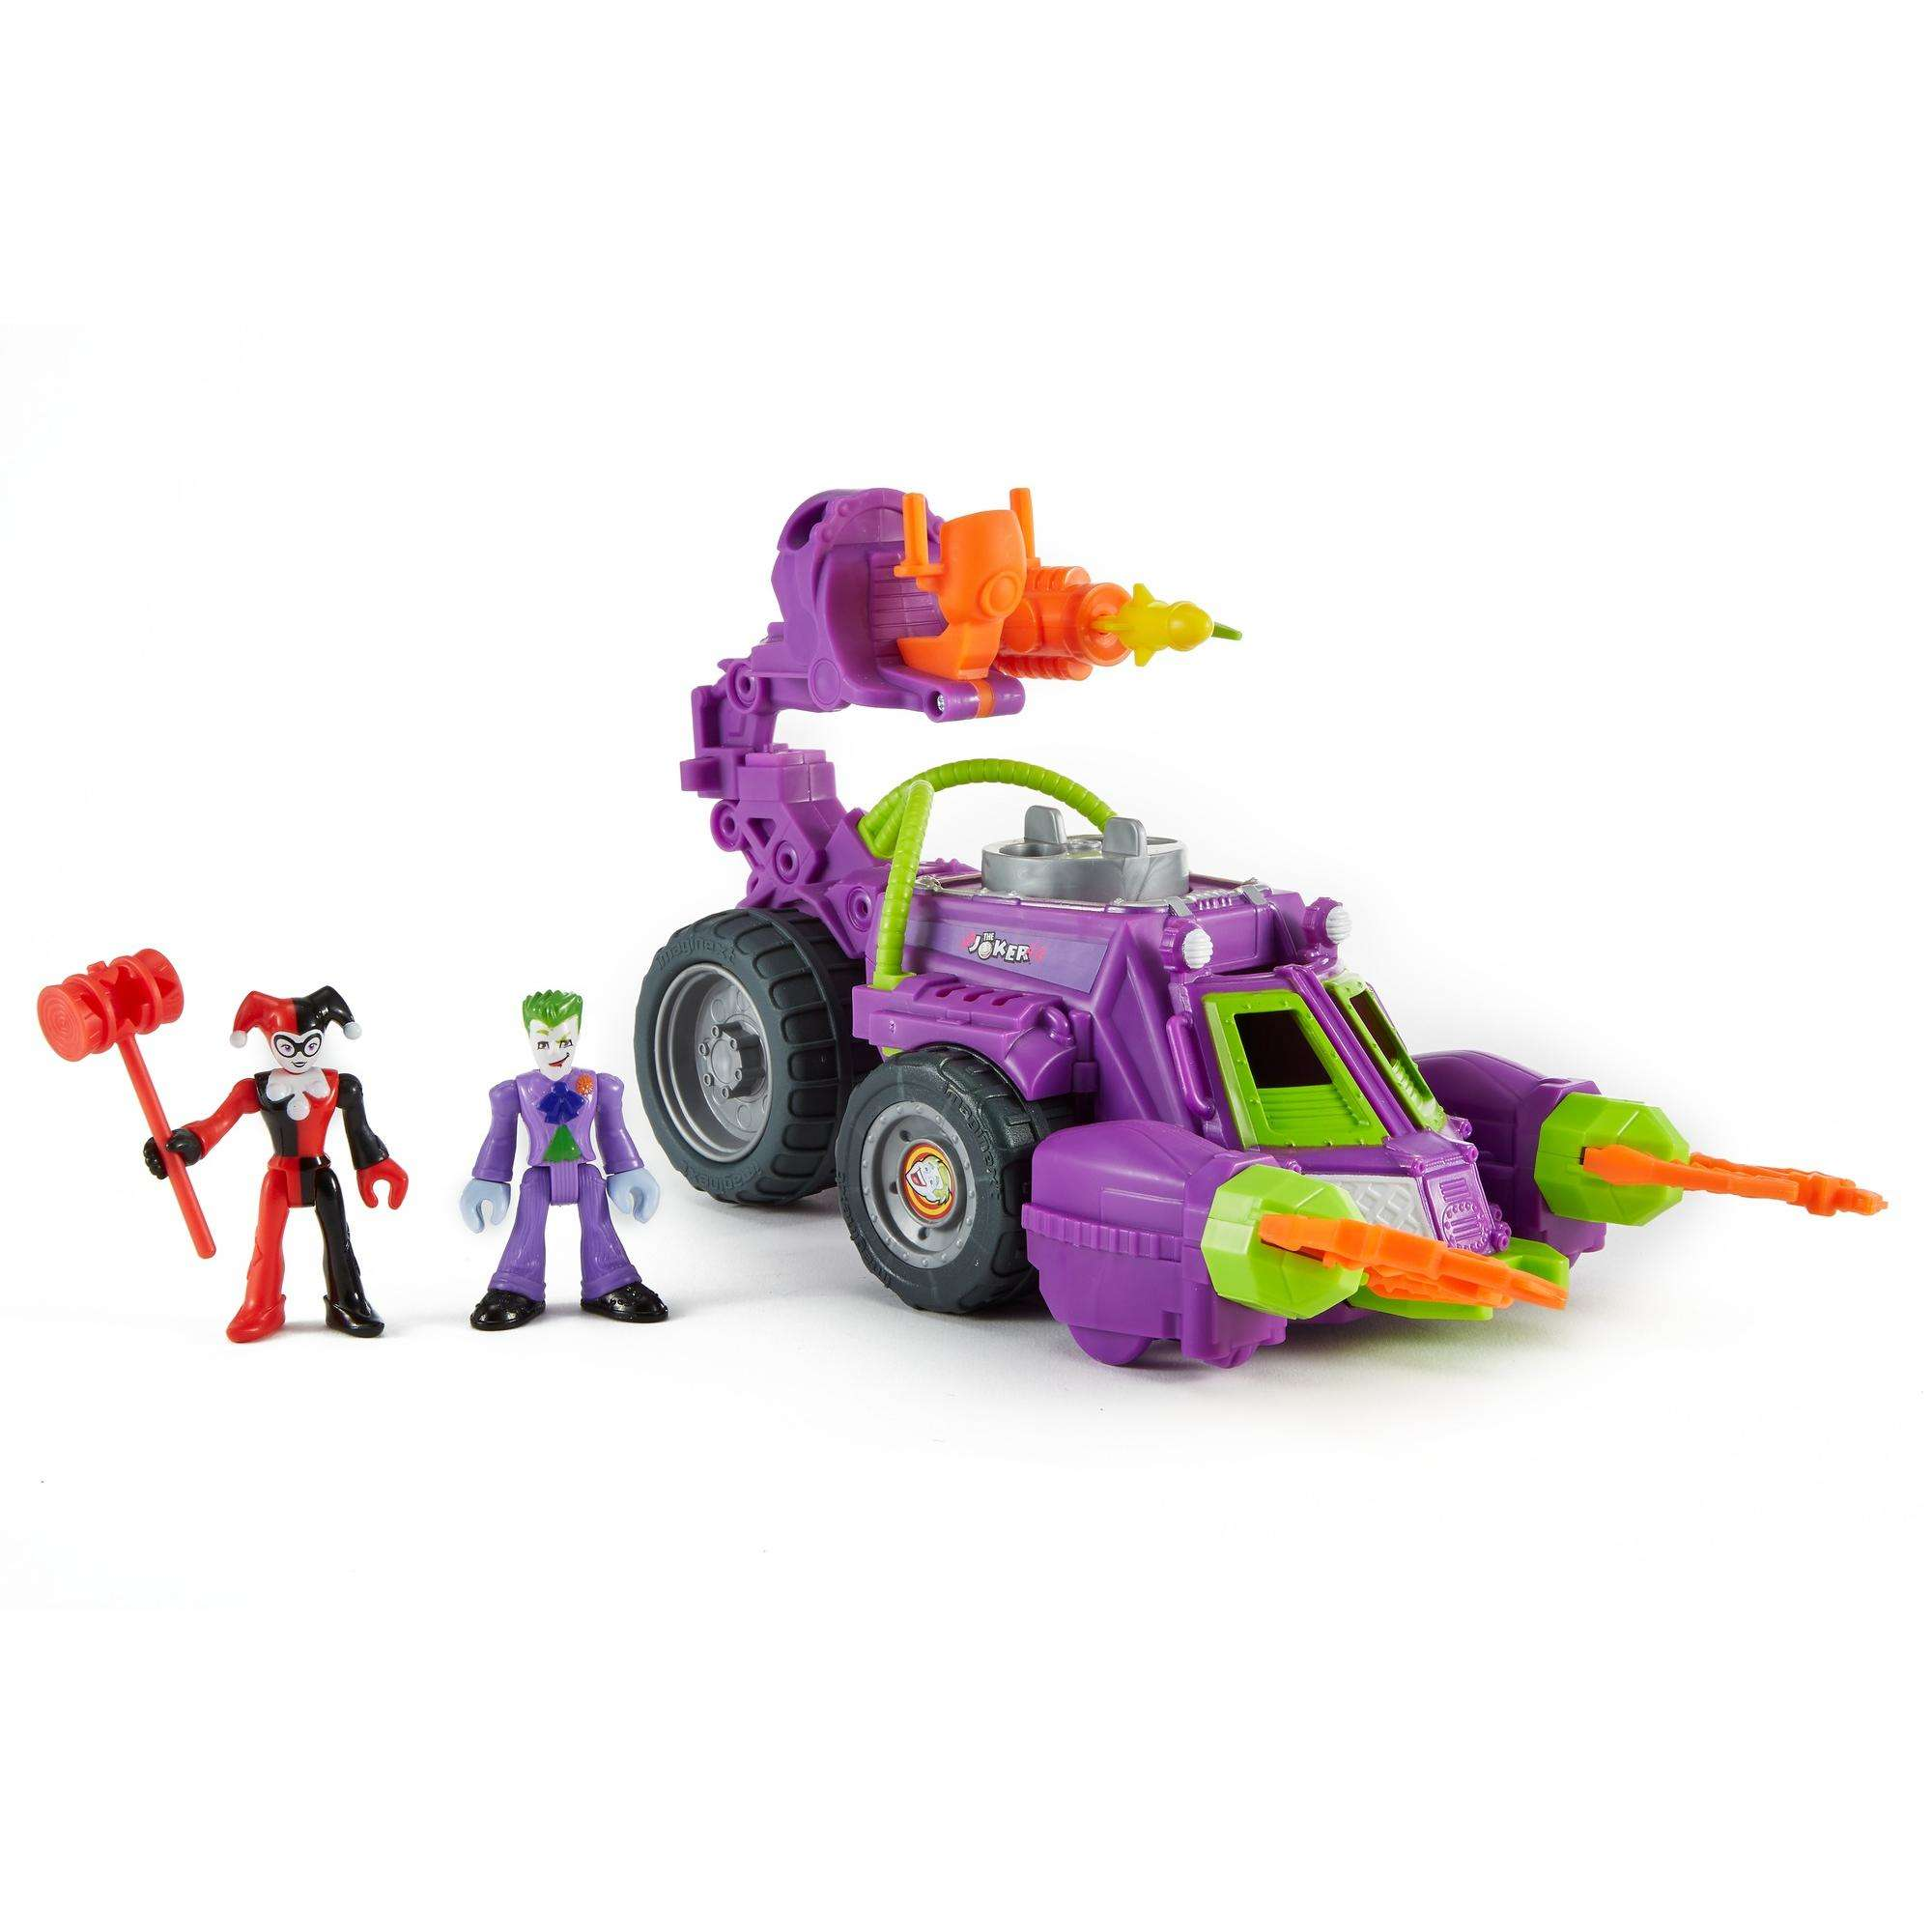 Imaginext DC Super Friends Joker & Harley Quinn Battle Vehicle